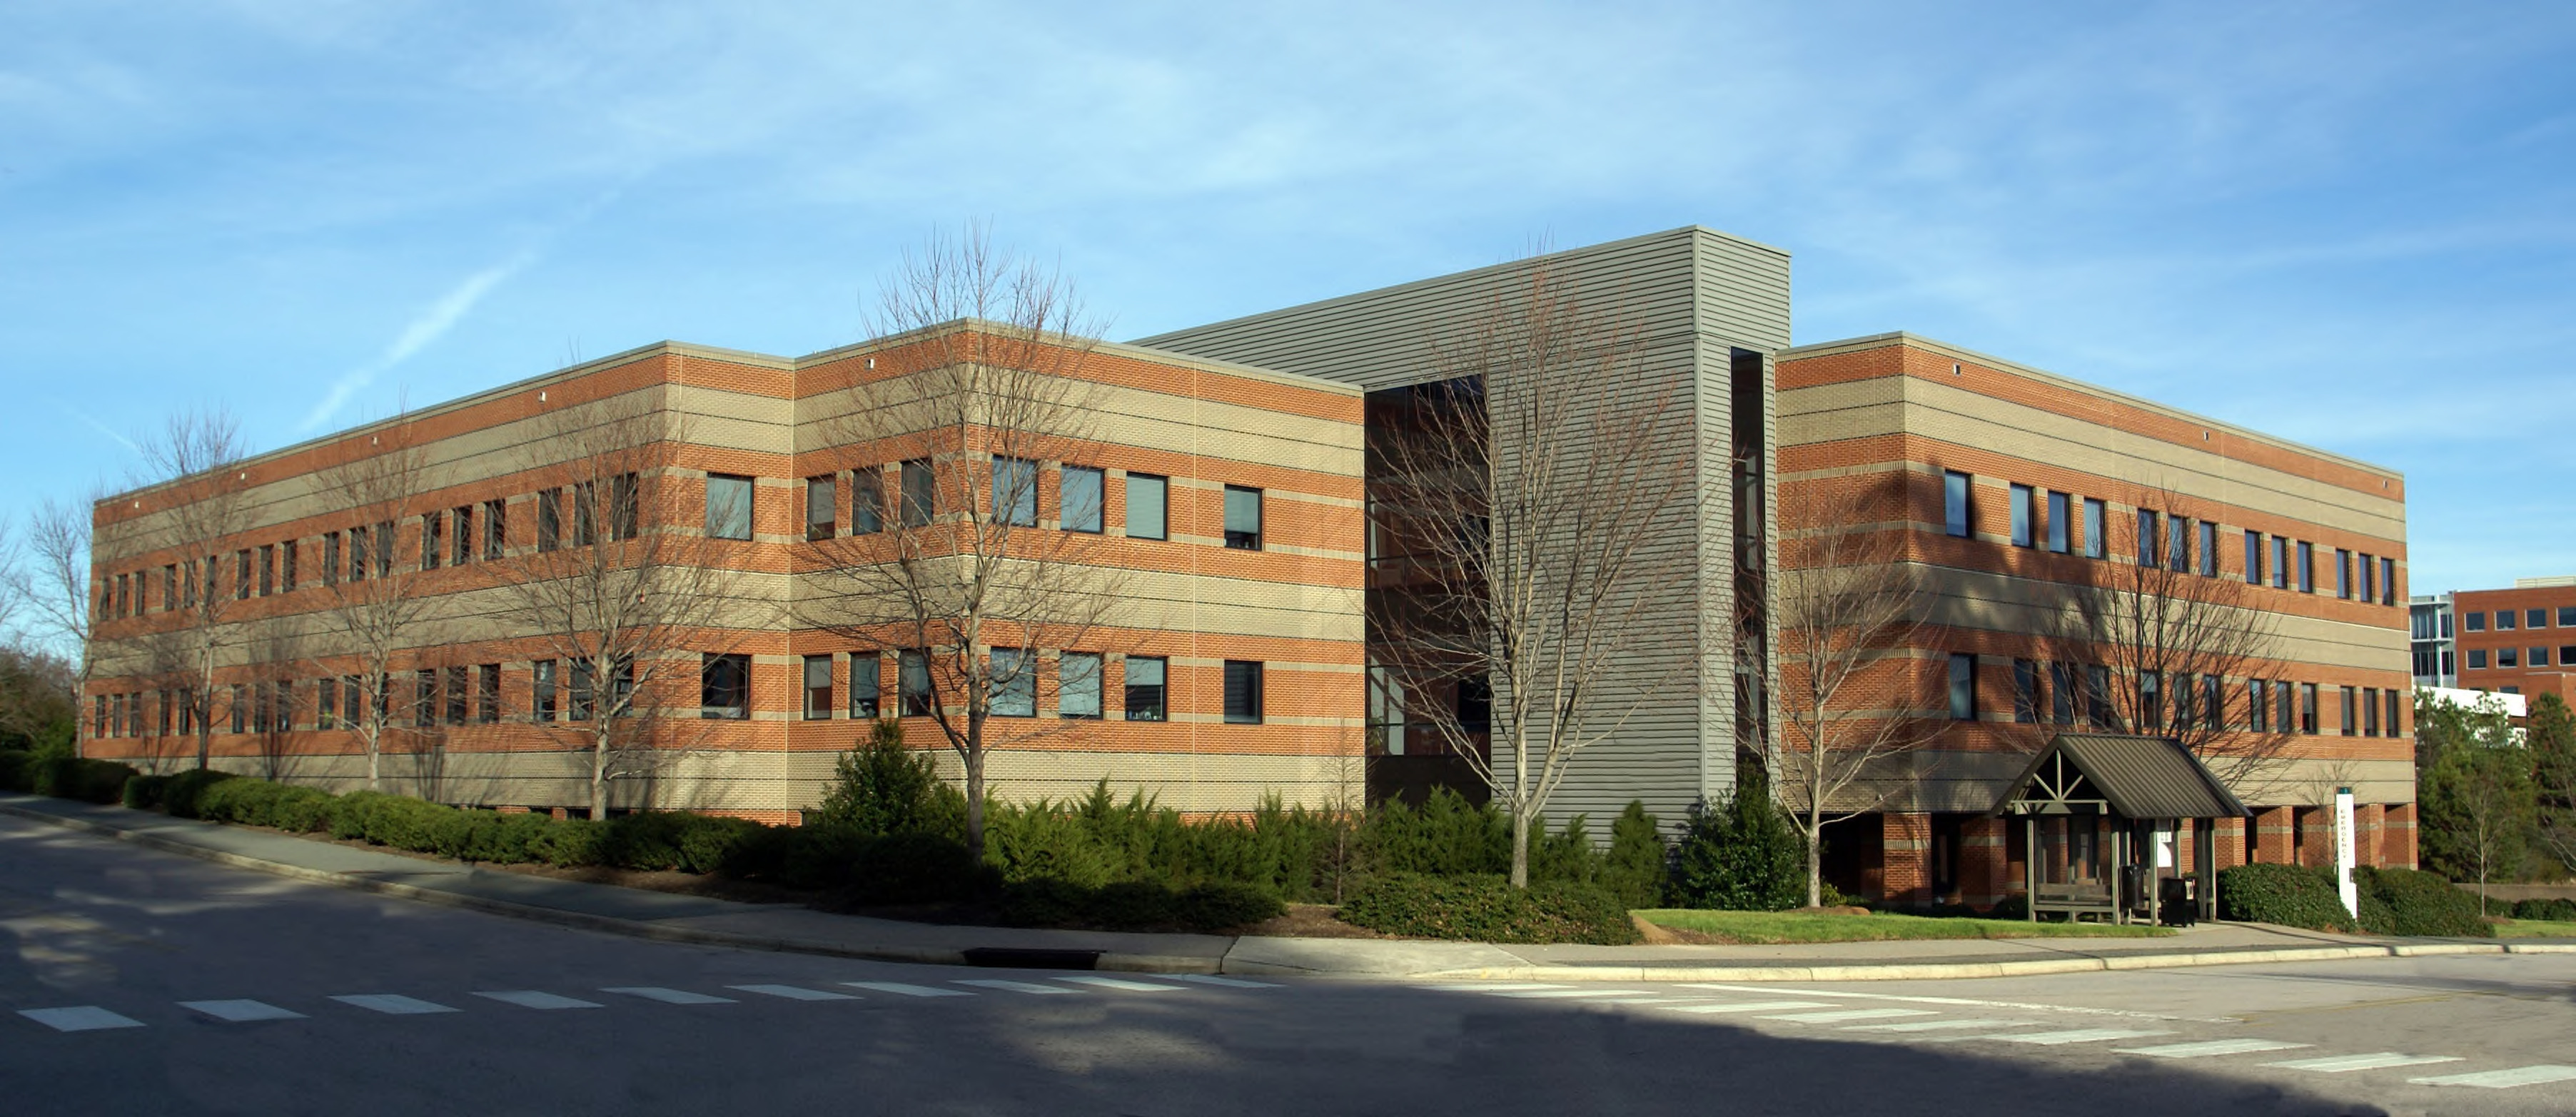 Centennial Campus, Research Building IV